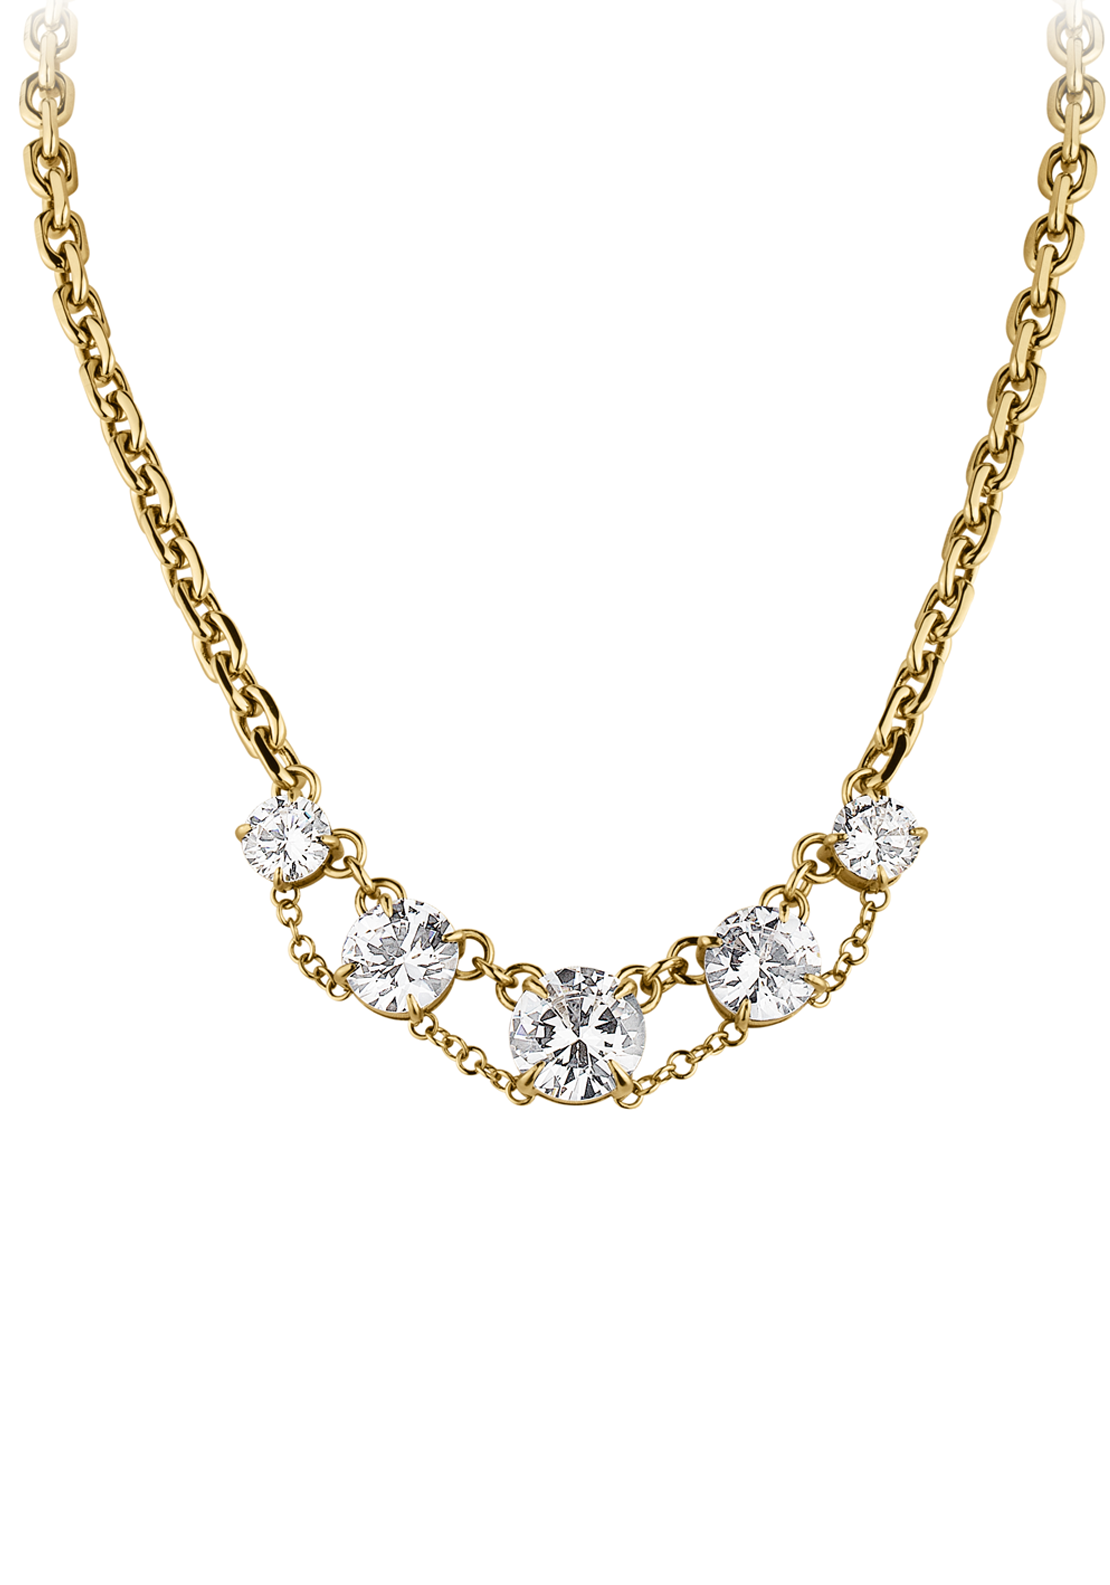 Dyrberg Kern Devonalia Necklace with Cubic Zirconia Stones, Gold